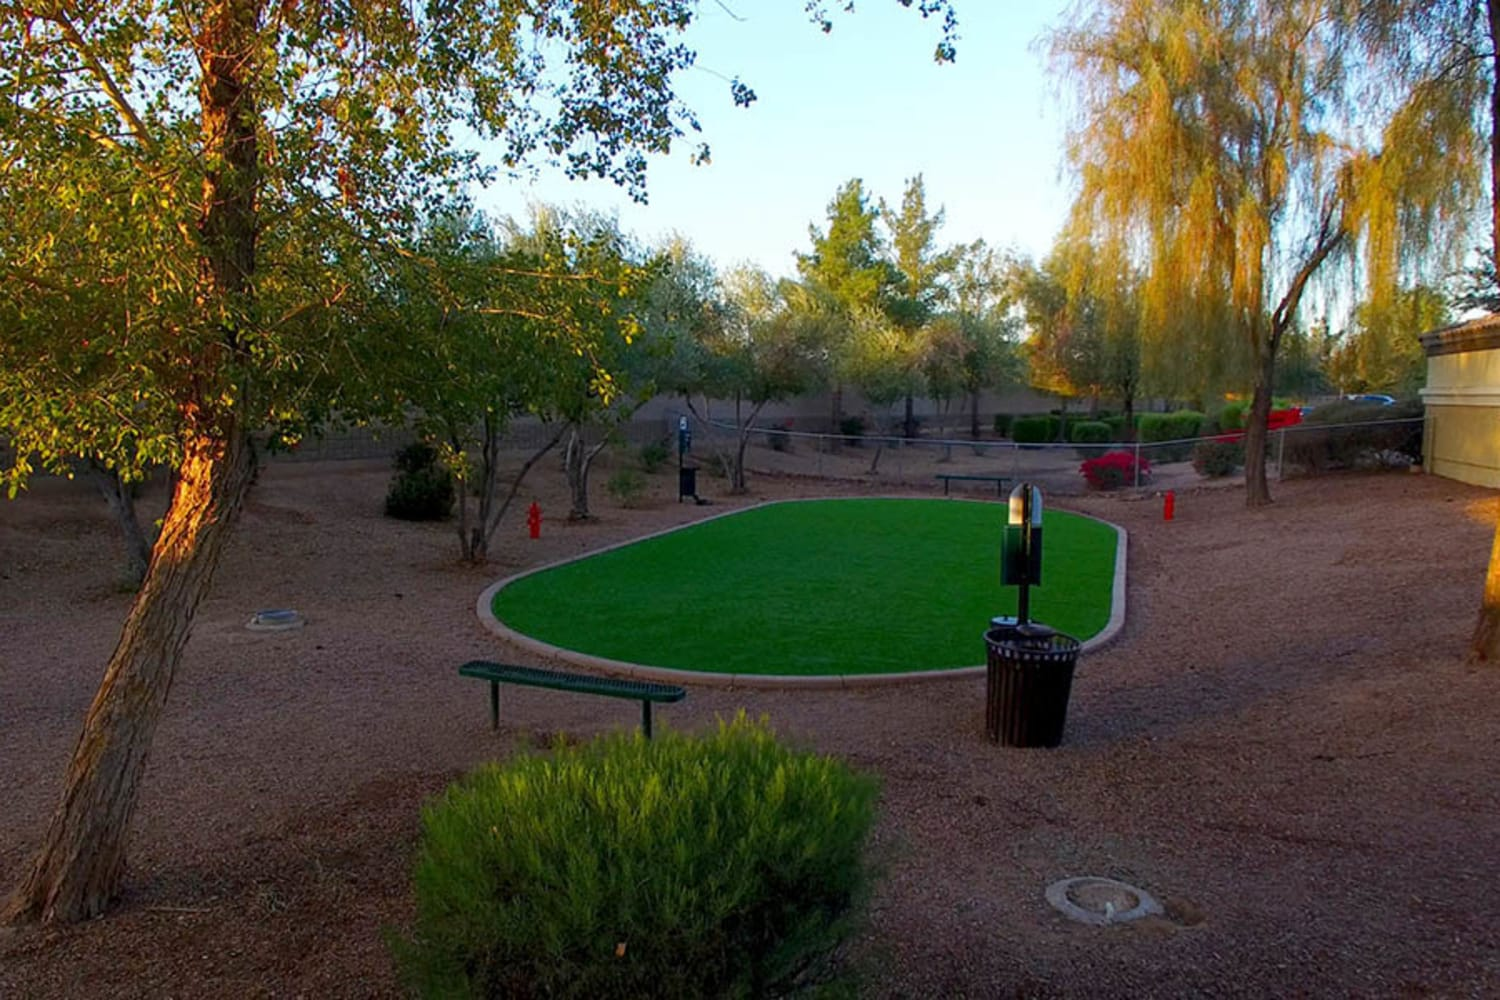 2150 Arizona Ave South in Chandler, Arizona, offers a dog park